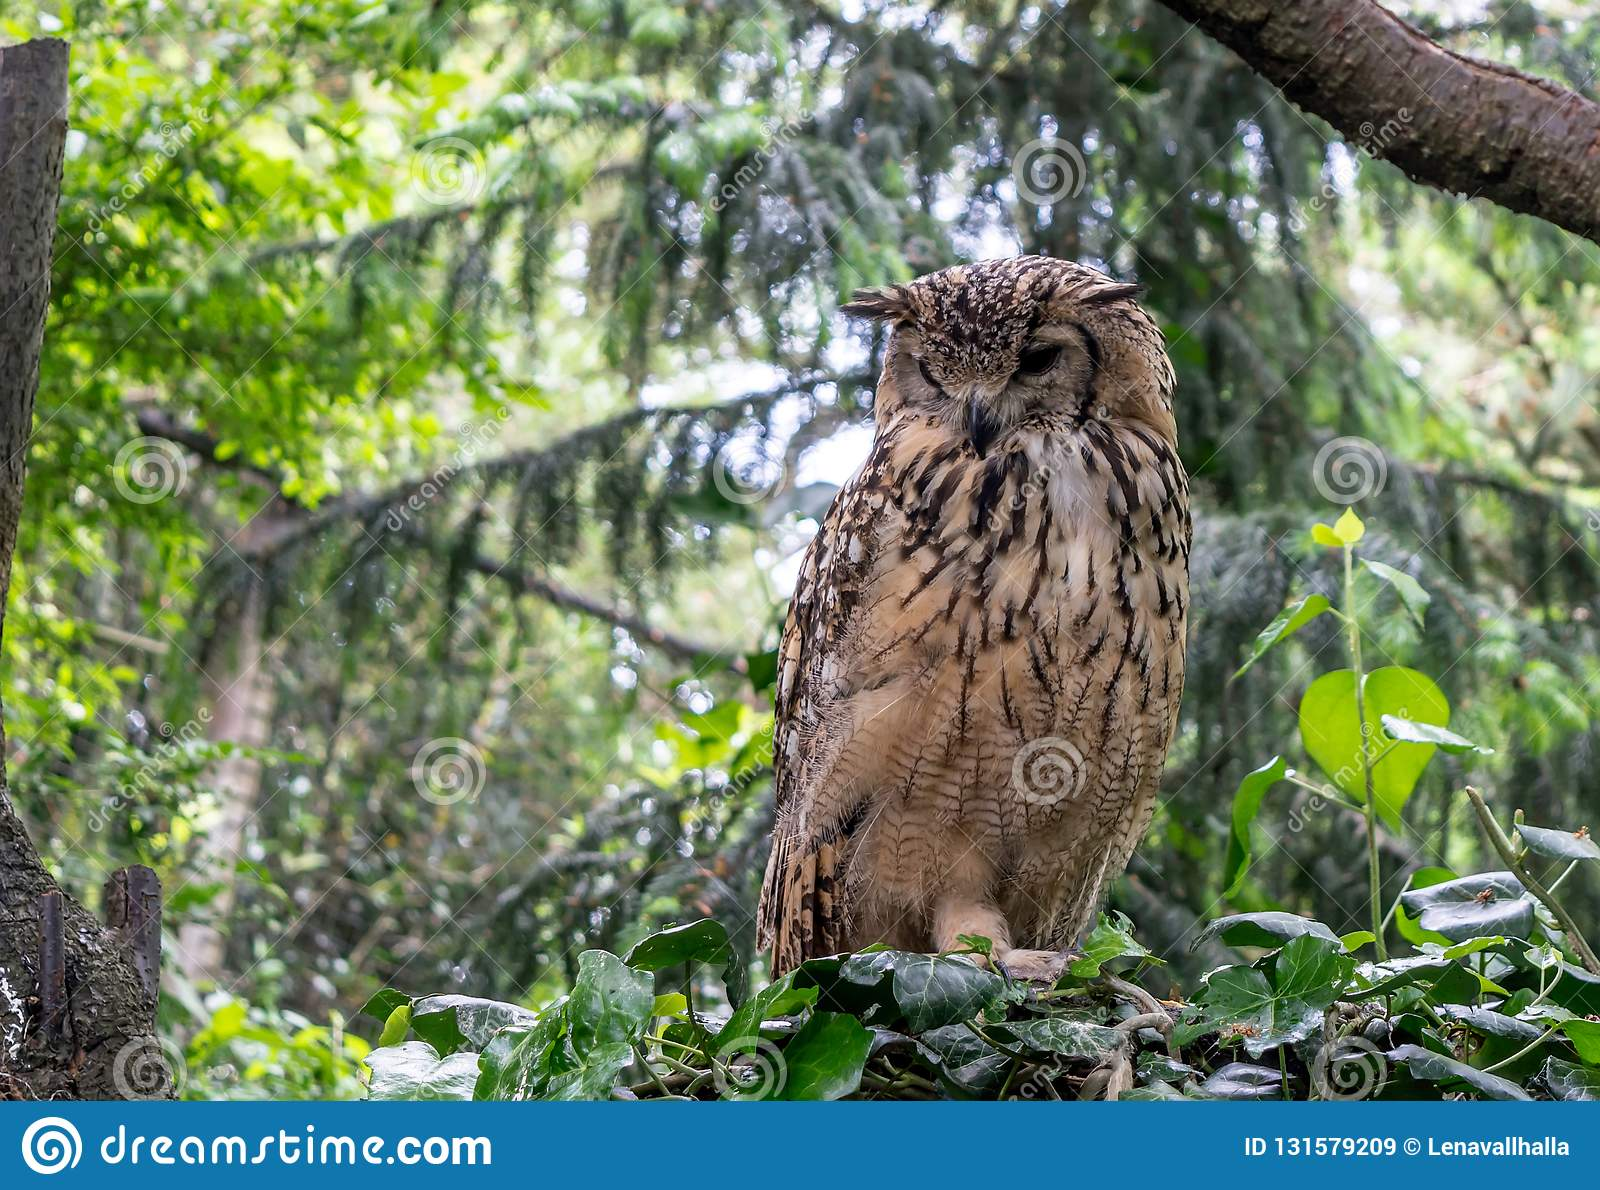 Indian eagle-owl, also called rock eagle-owl or Bengal eagle-owl Bubo bengalensis